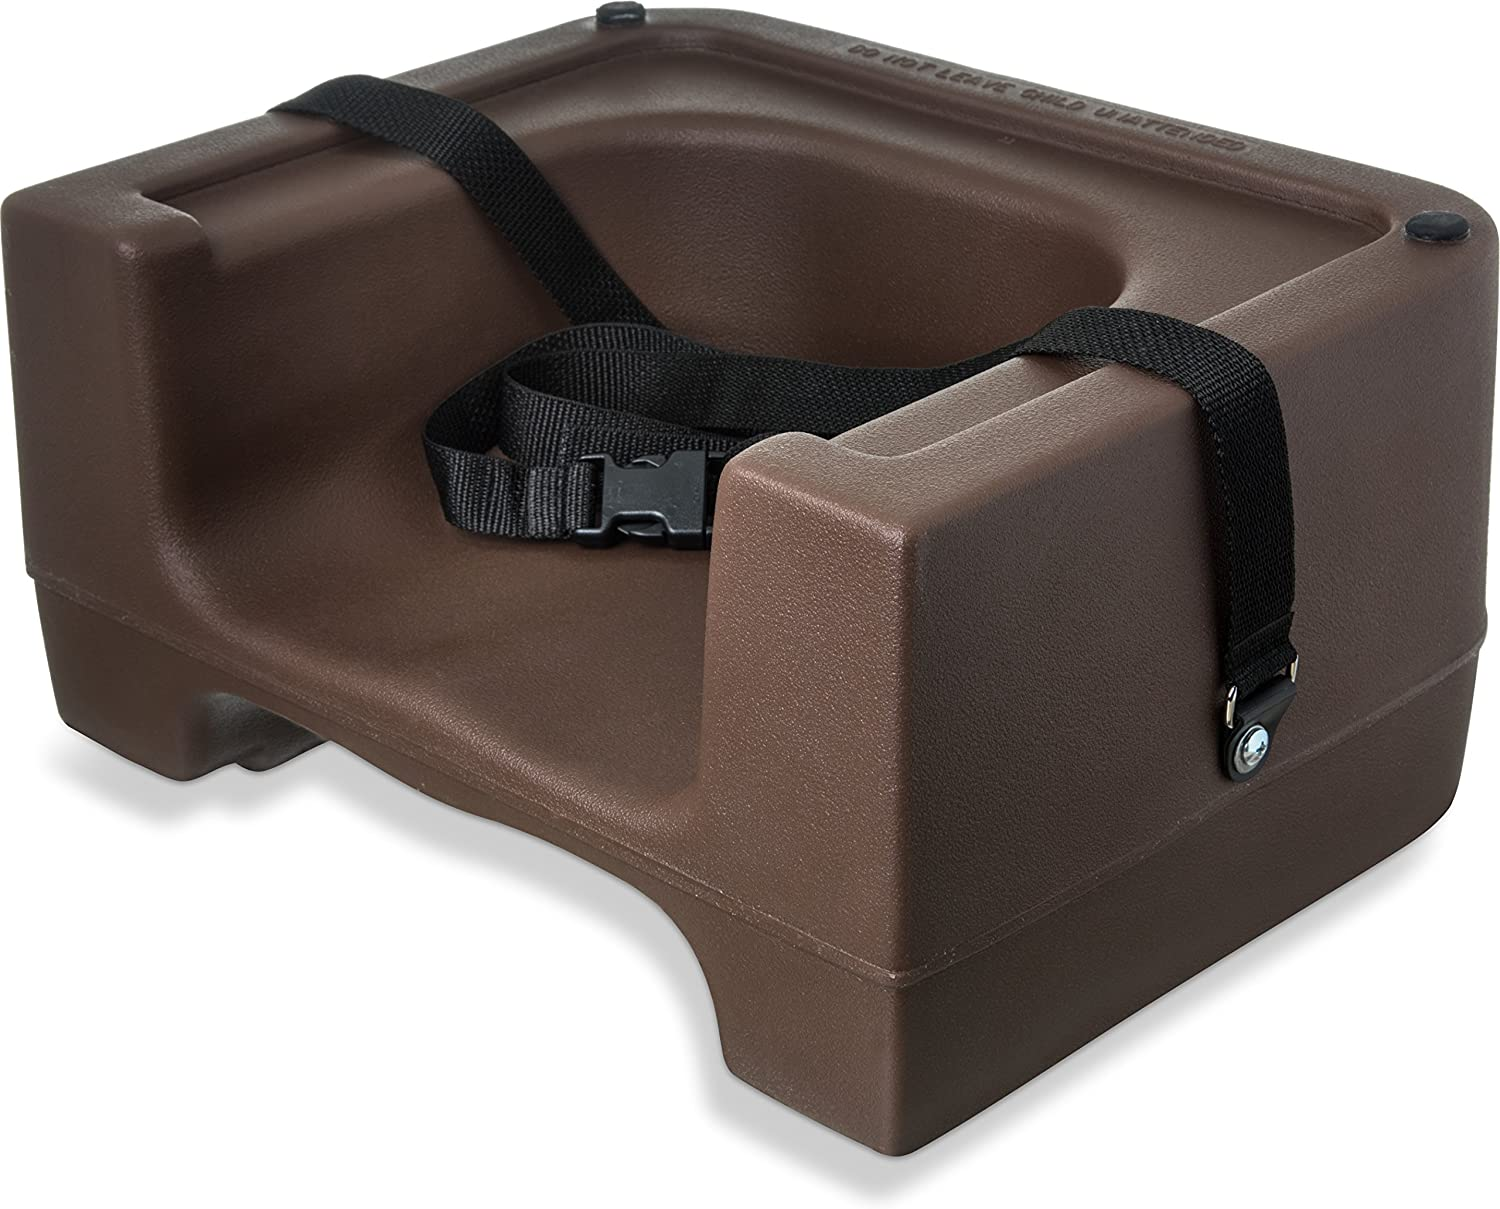 Carlisle 7111-401 Plastic Dual Seat Restaurant-Style Booster Chair with Safety Strap, Brown